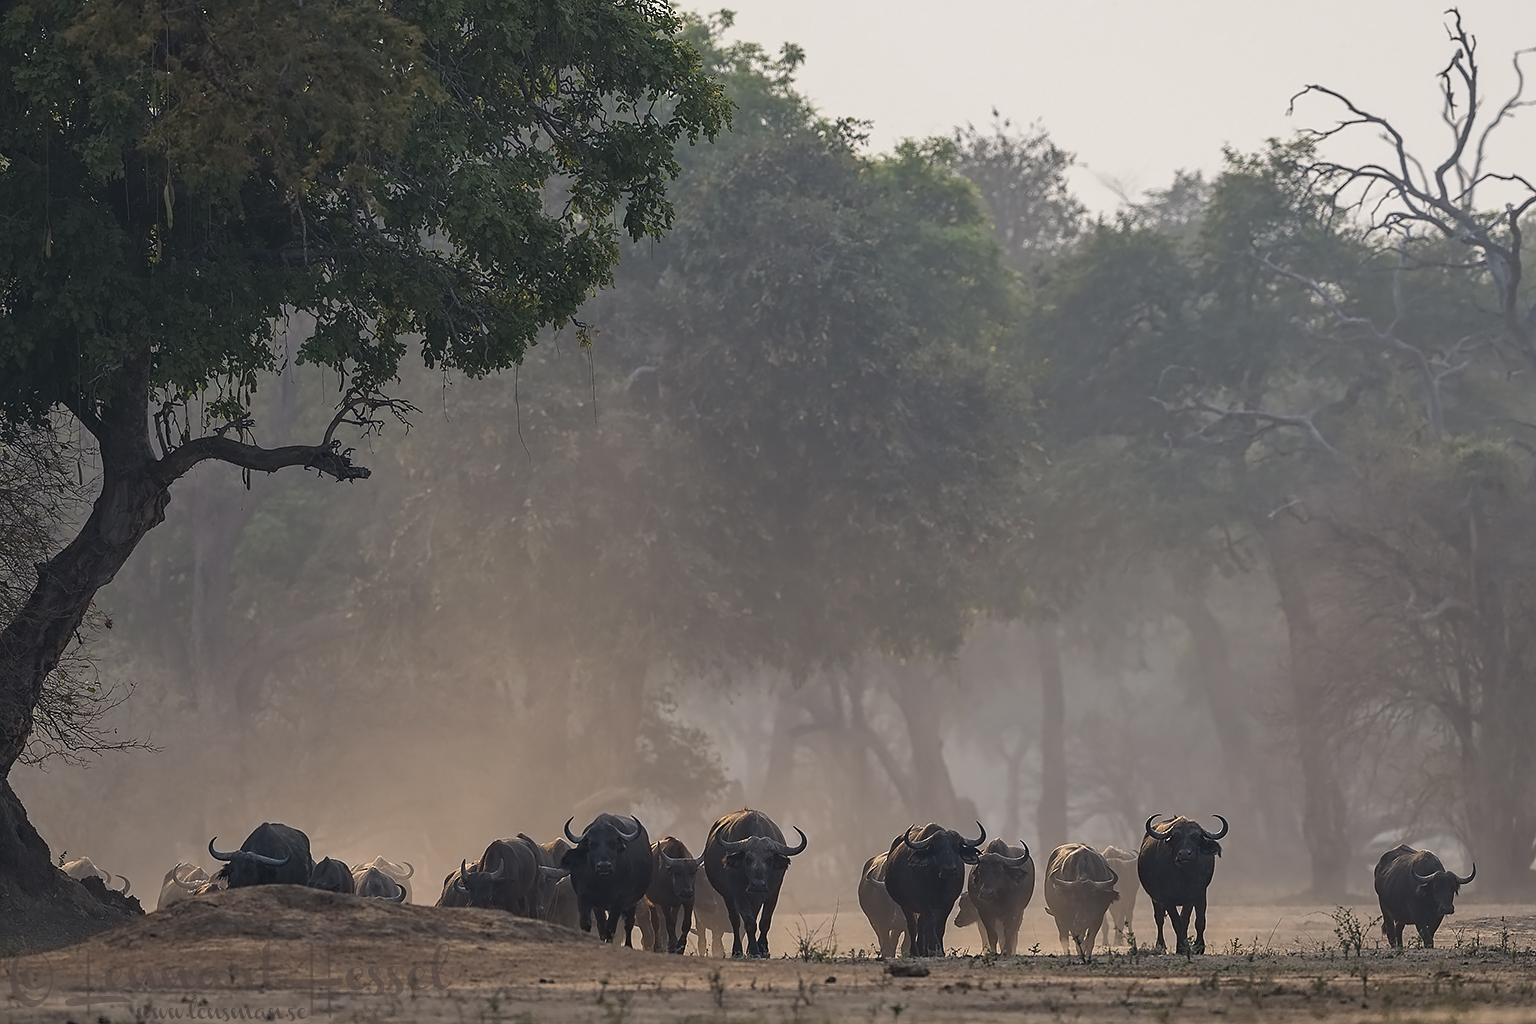 Cape Buffalo herd Mana Pools National Park